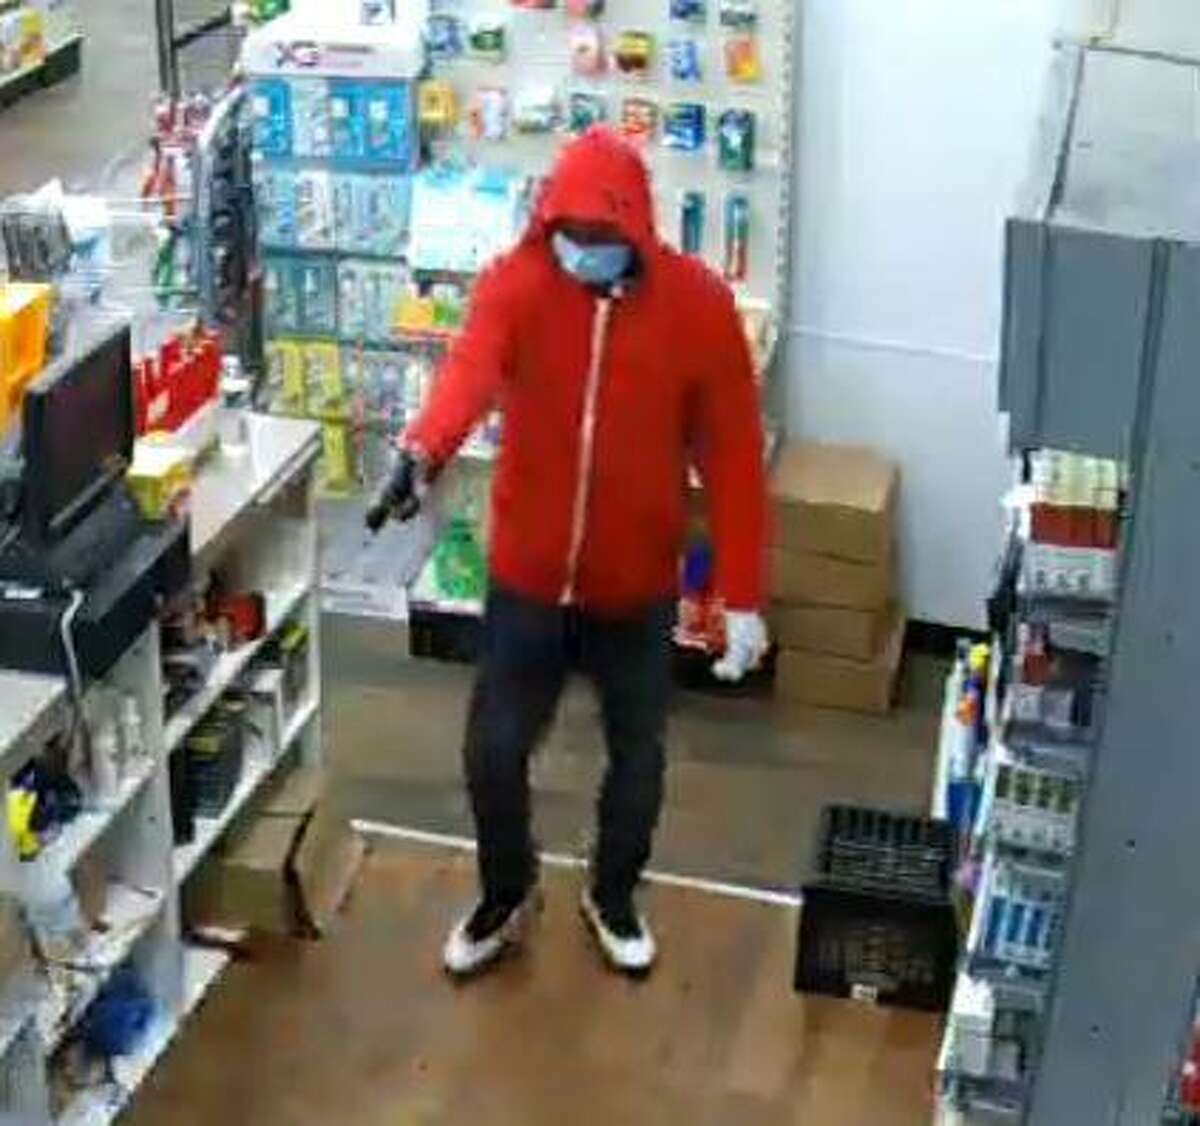 A man uses a handgun to rob the Mobil gas station and convenience store at 904 West Main Street on Tuesday, June 16, 2020. On the same evening, a man wearing the same clothes robbed the West Main Street Grocery - which has been held up three times this year.